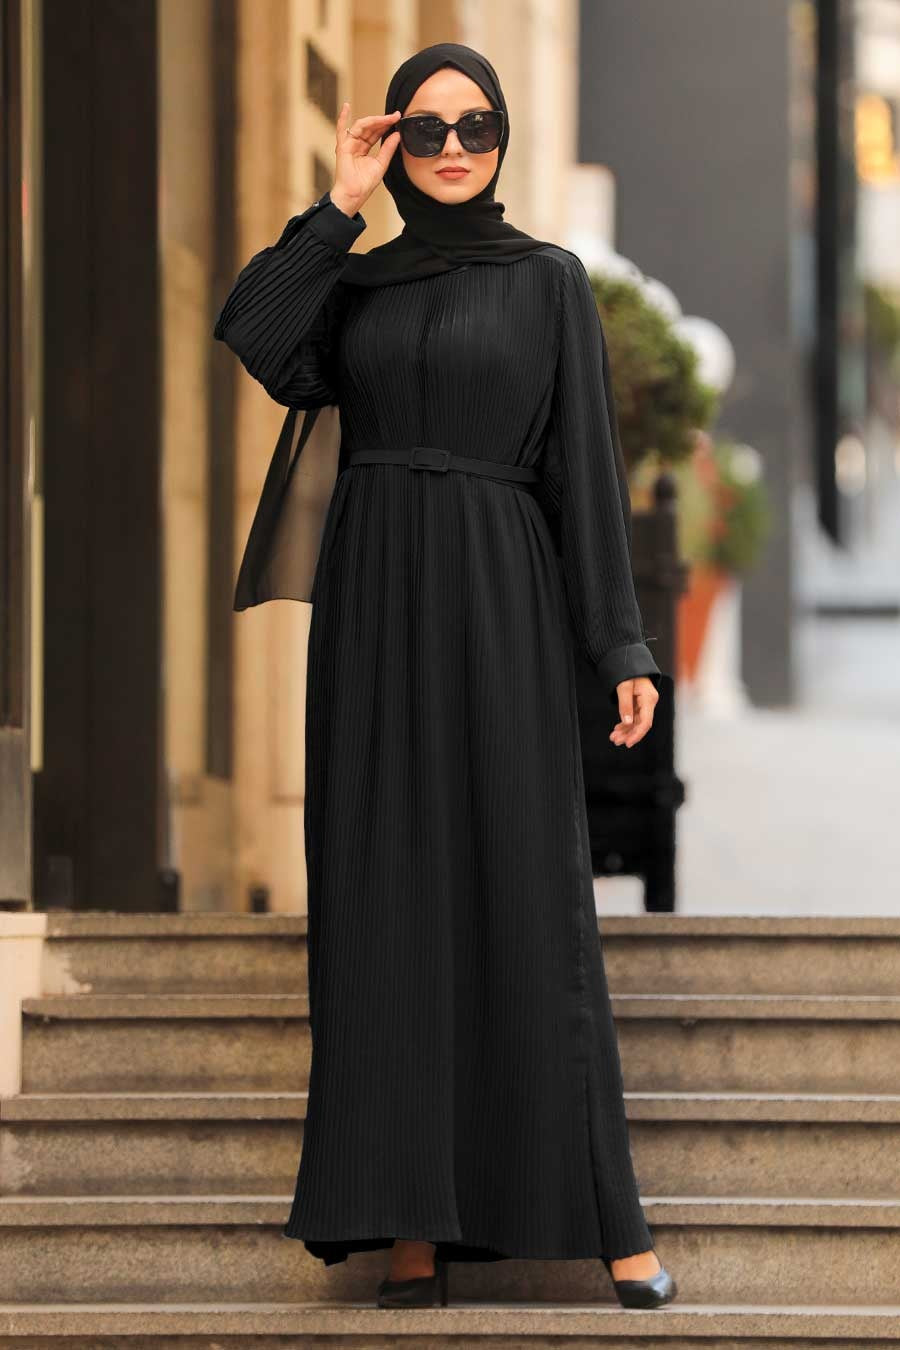 Women's Pleated Black Modest Long Dress